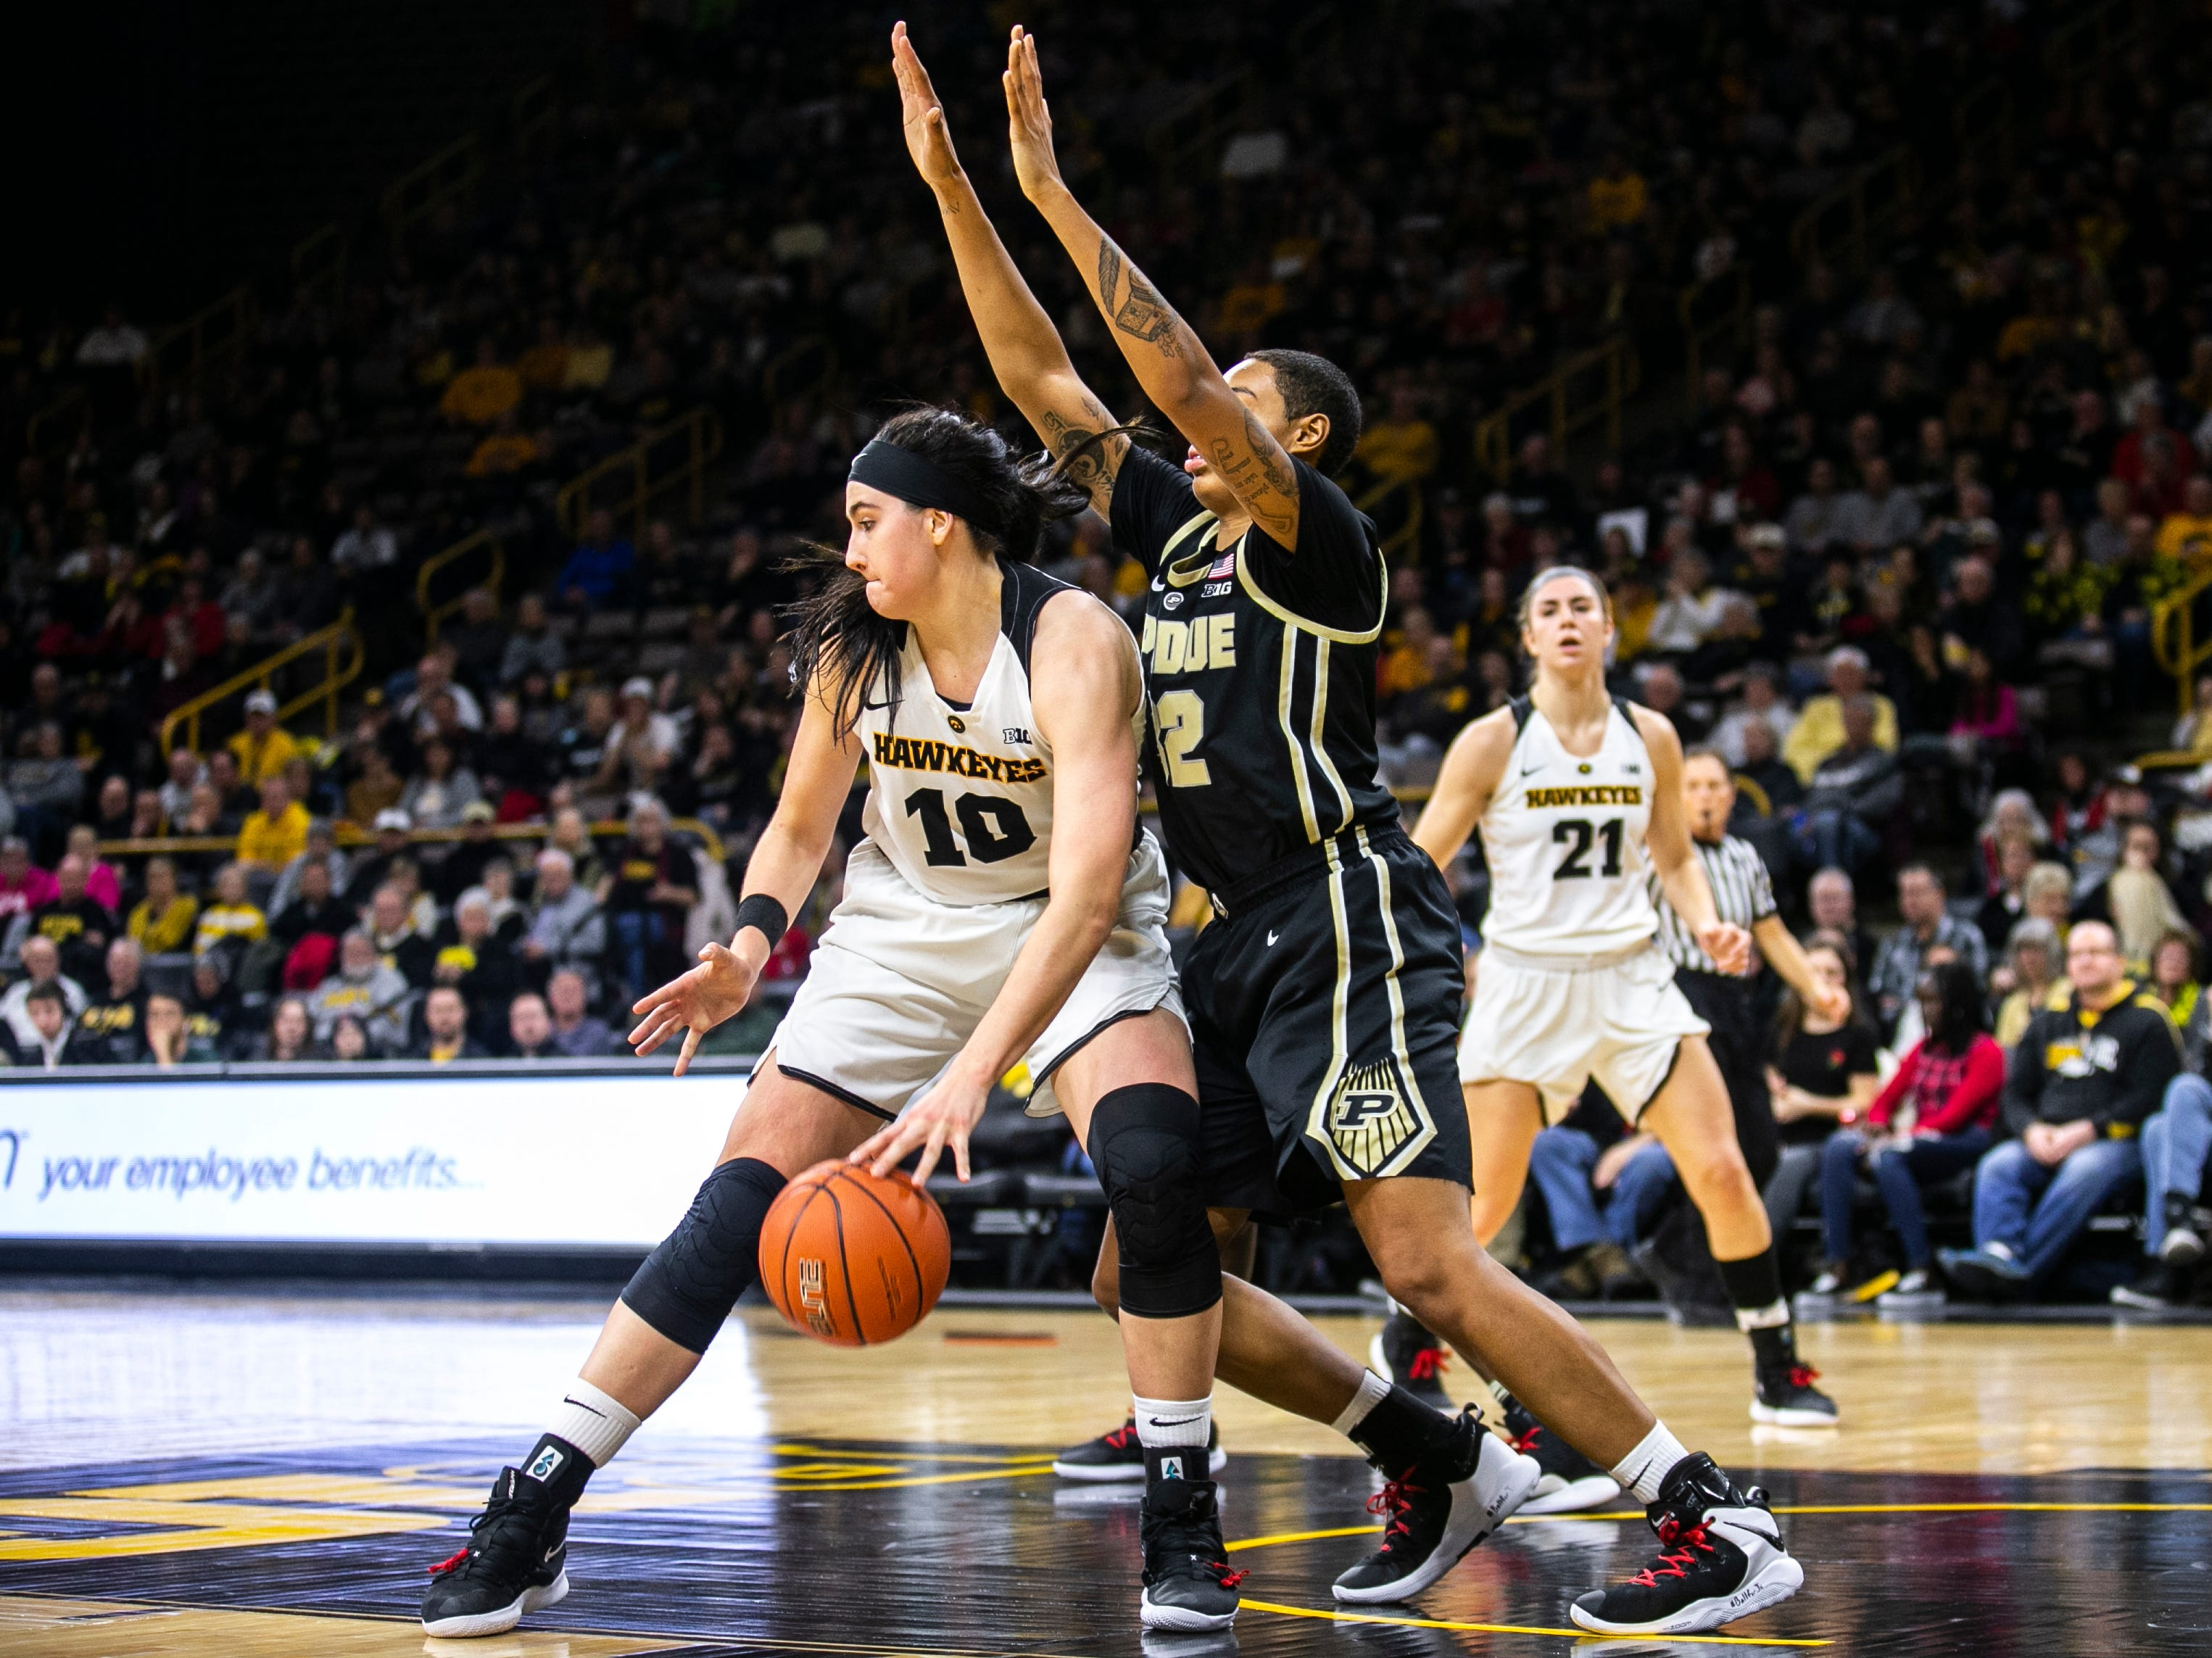 Iowa center Megan Gustafson (10) gets defended by Purdue forward Ae'Rianna Harris during a NCAA Big Ten Conference women's basketball game on Sunday, Jan. 27, 2019, at Carver-Hawkeye Arena in Iowa City, Iowa.